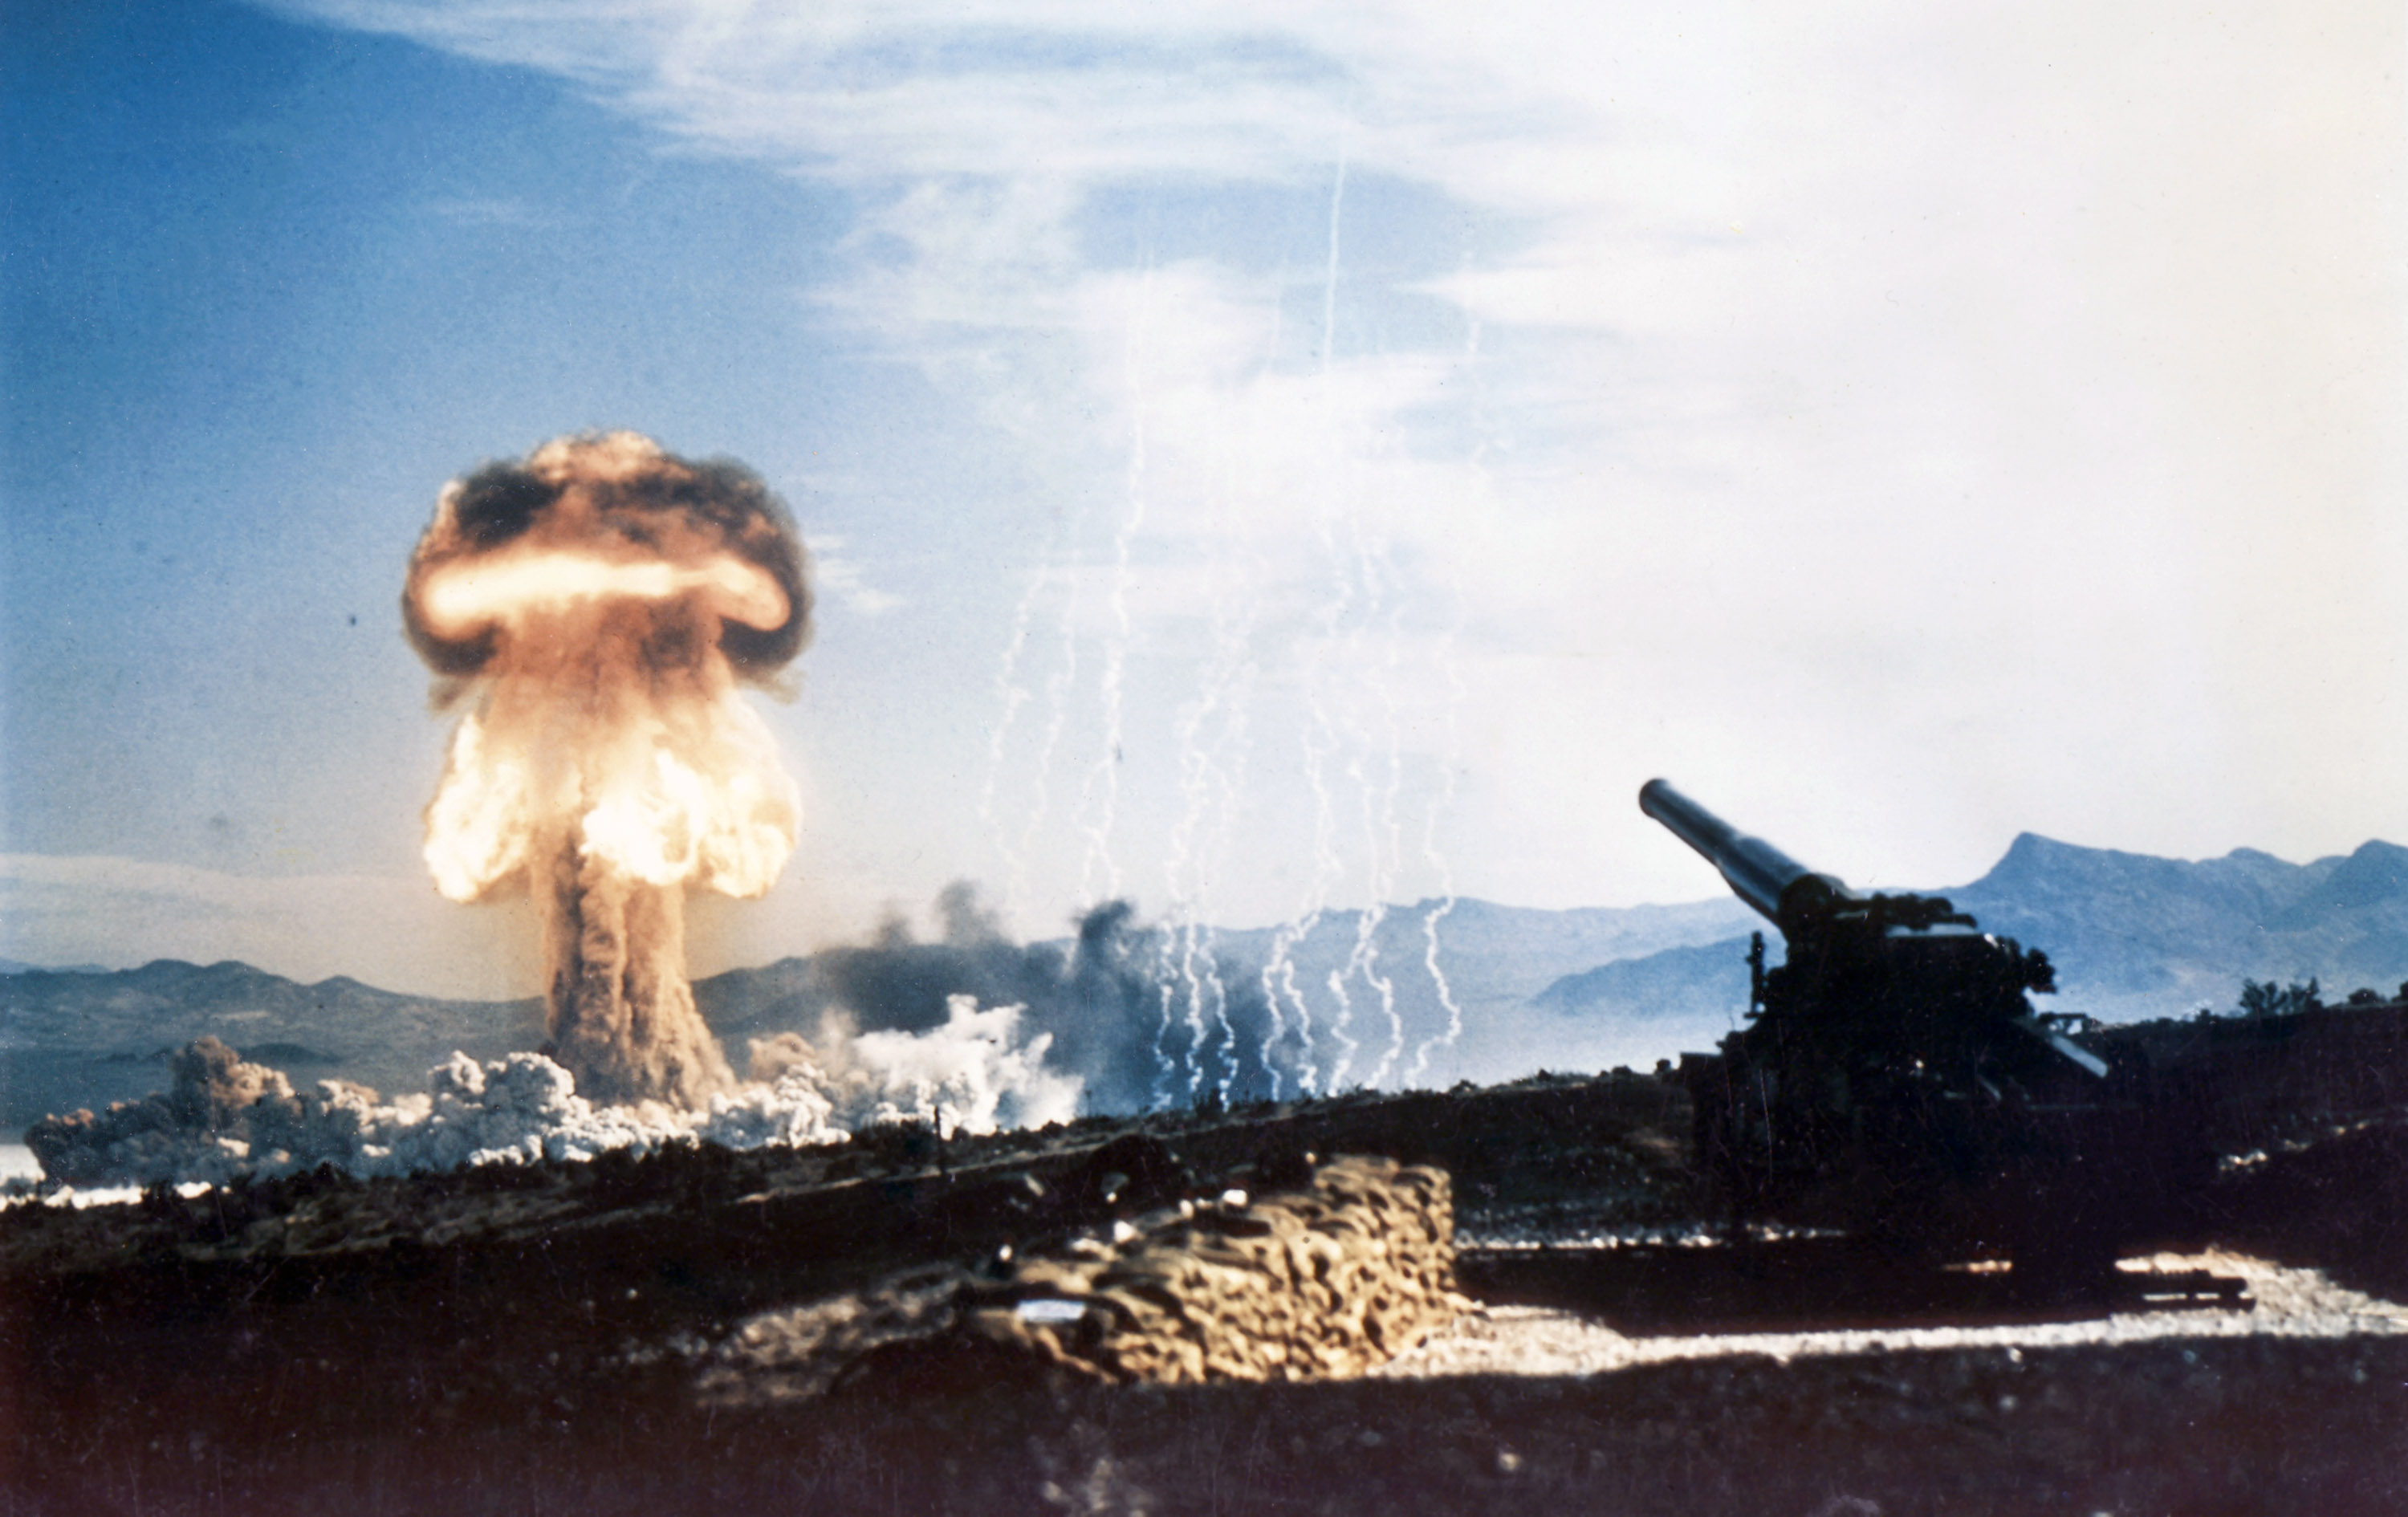 Part of Operation Upshot-Knothole, was a 15-kiloton test fired from a 280-mm cannon on May 25, 1953 at the Nevada Proving Grounds.